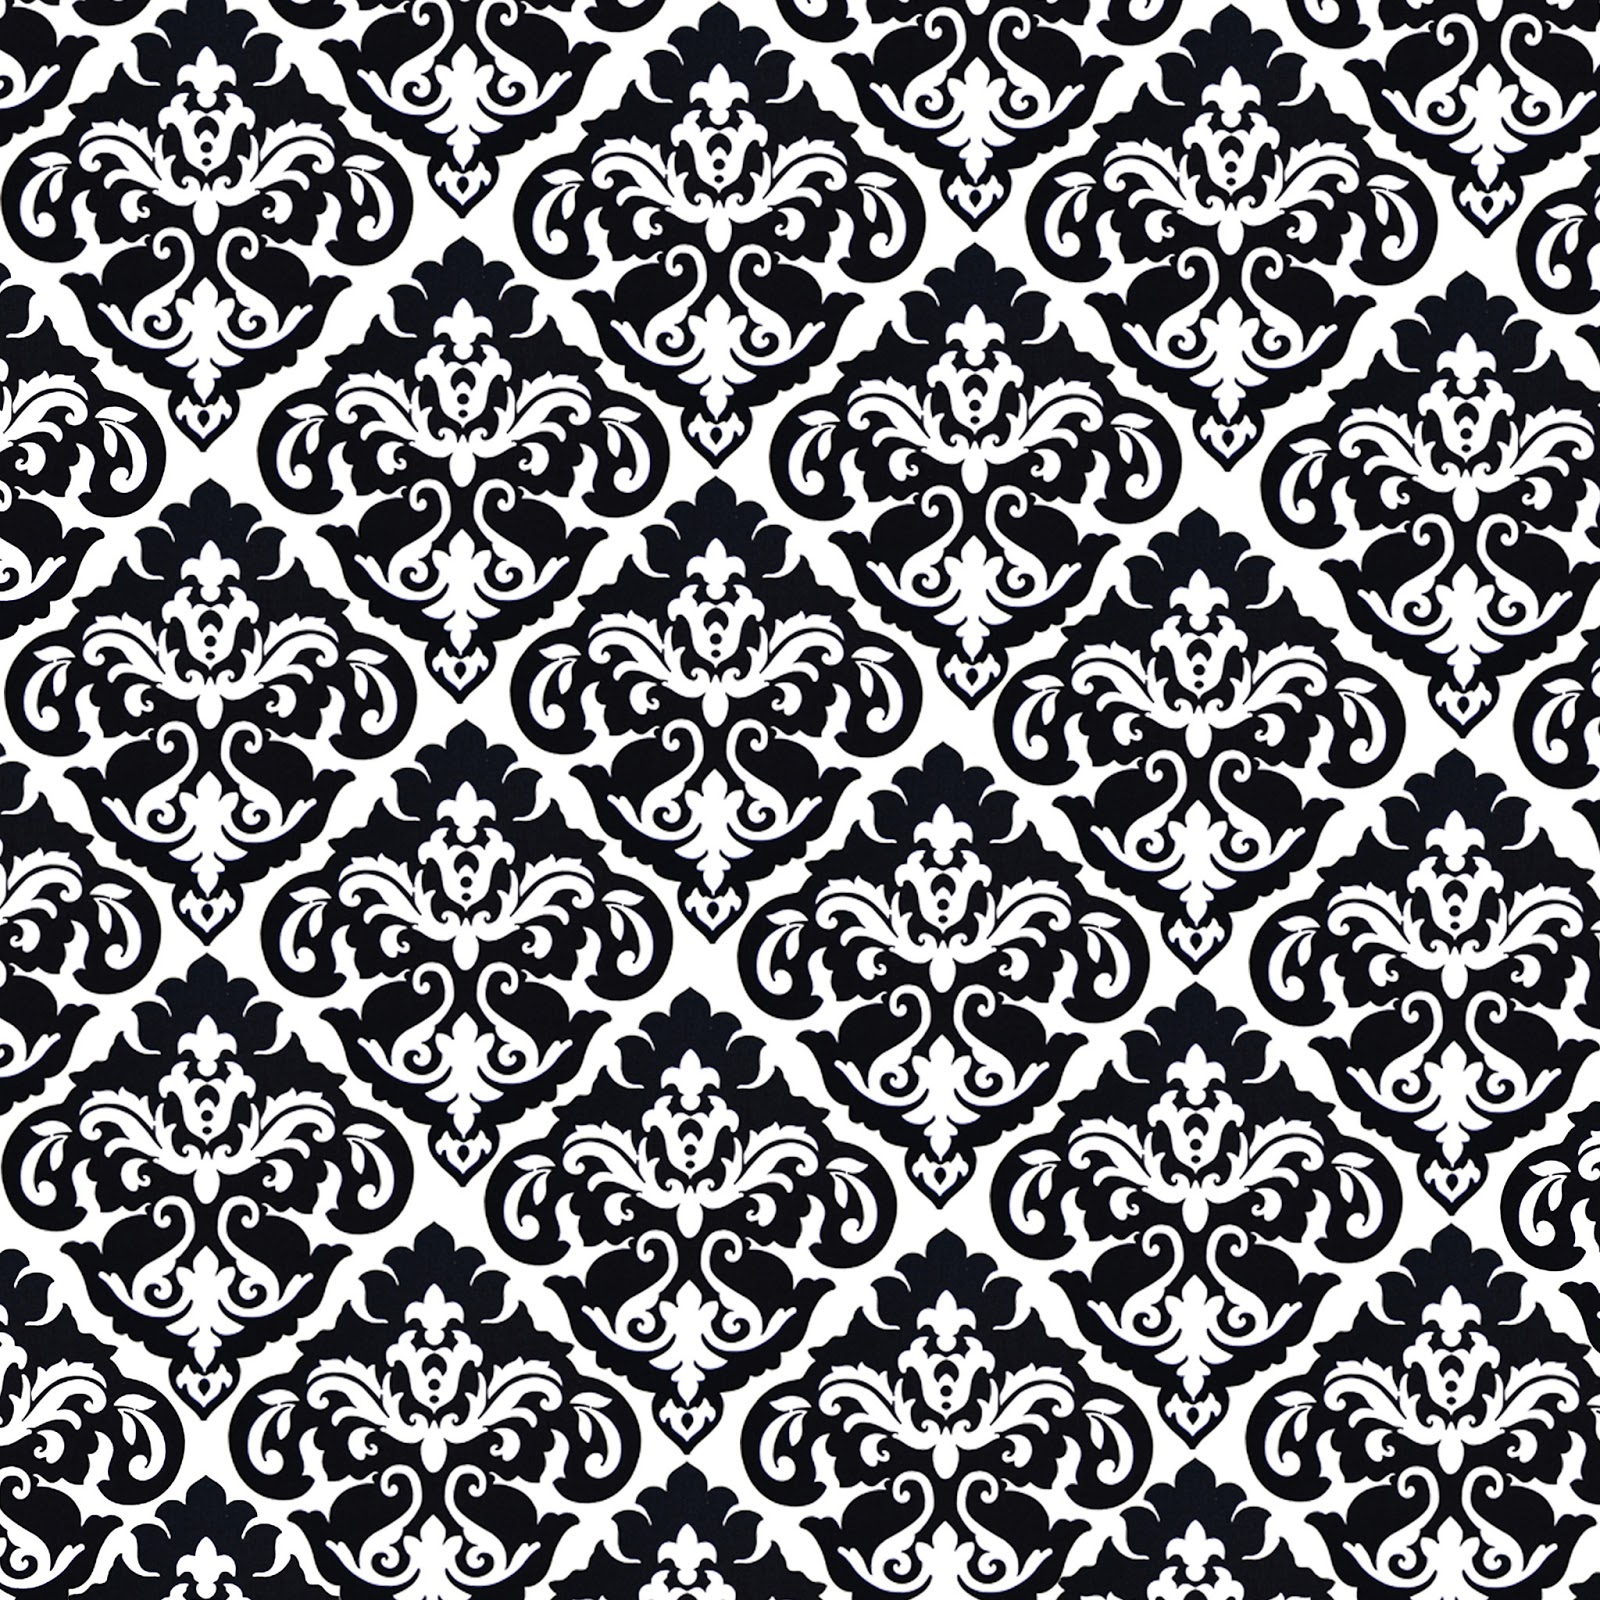 Backgrounds Wallpapers Black And White Vintage Pattern Stmoh0e1jpg 1600x1600